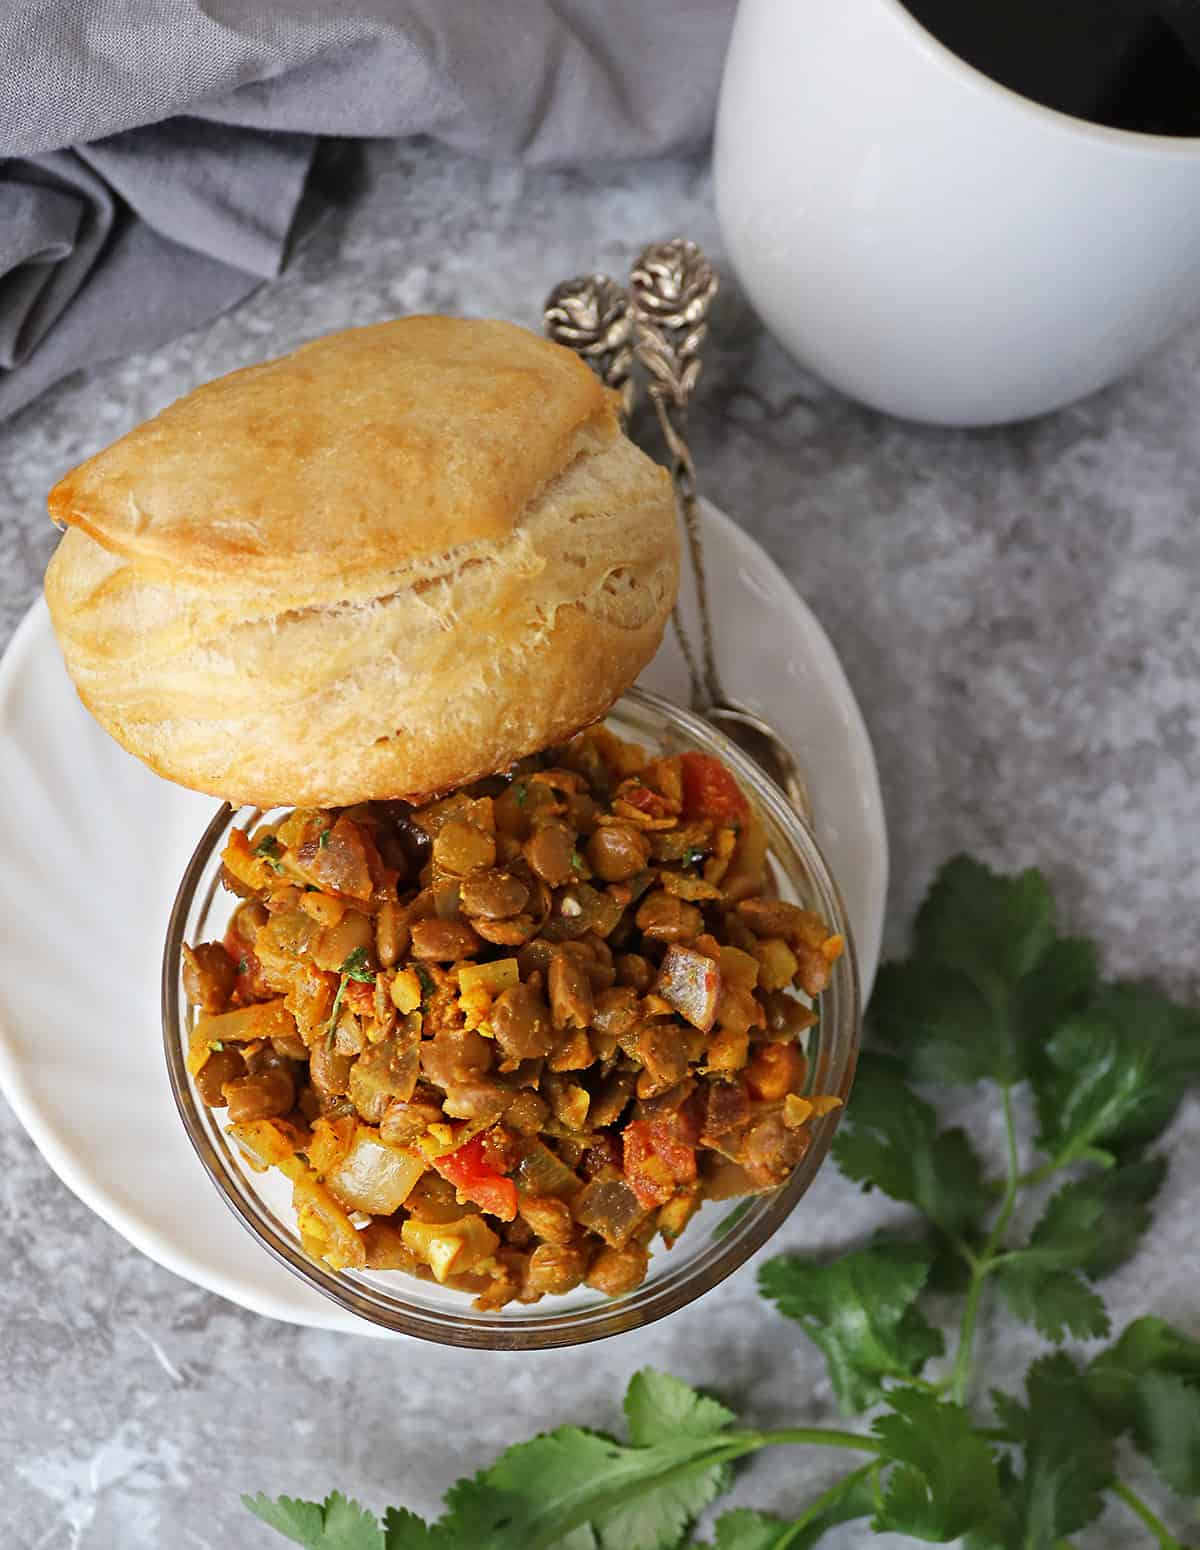 Biscuits With Lentil tomato saute